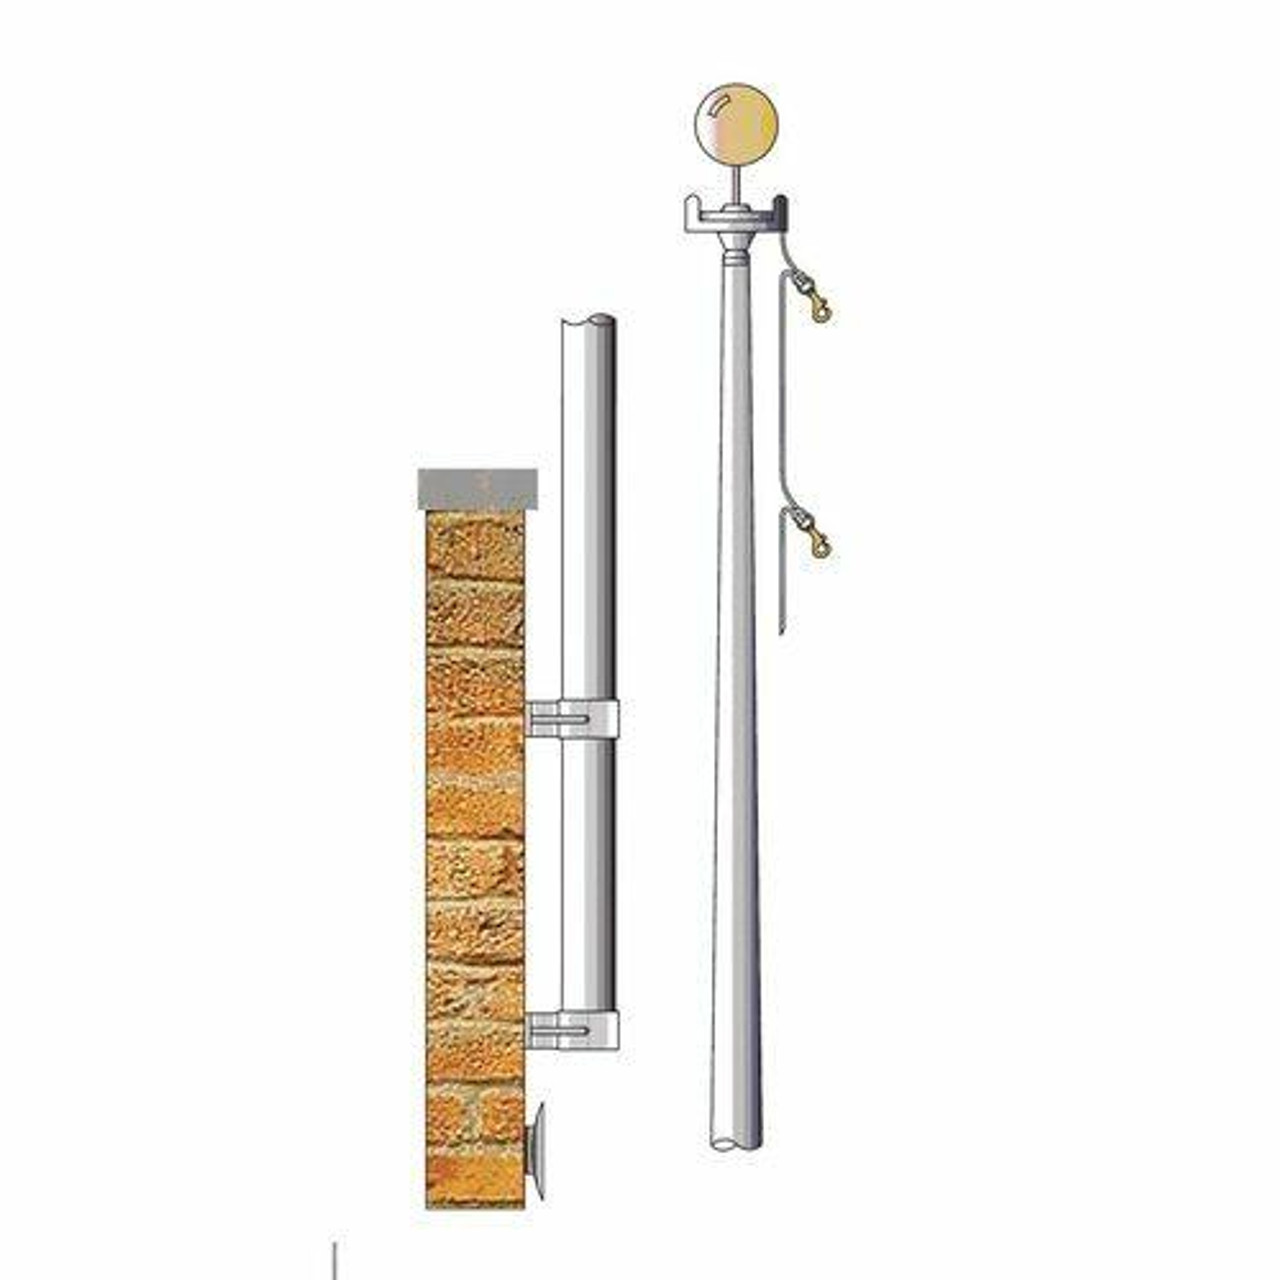 23 Vertical Wall Mounted Flagpole LVWC23